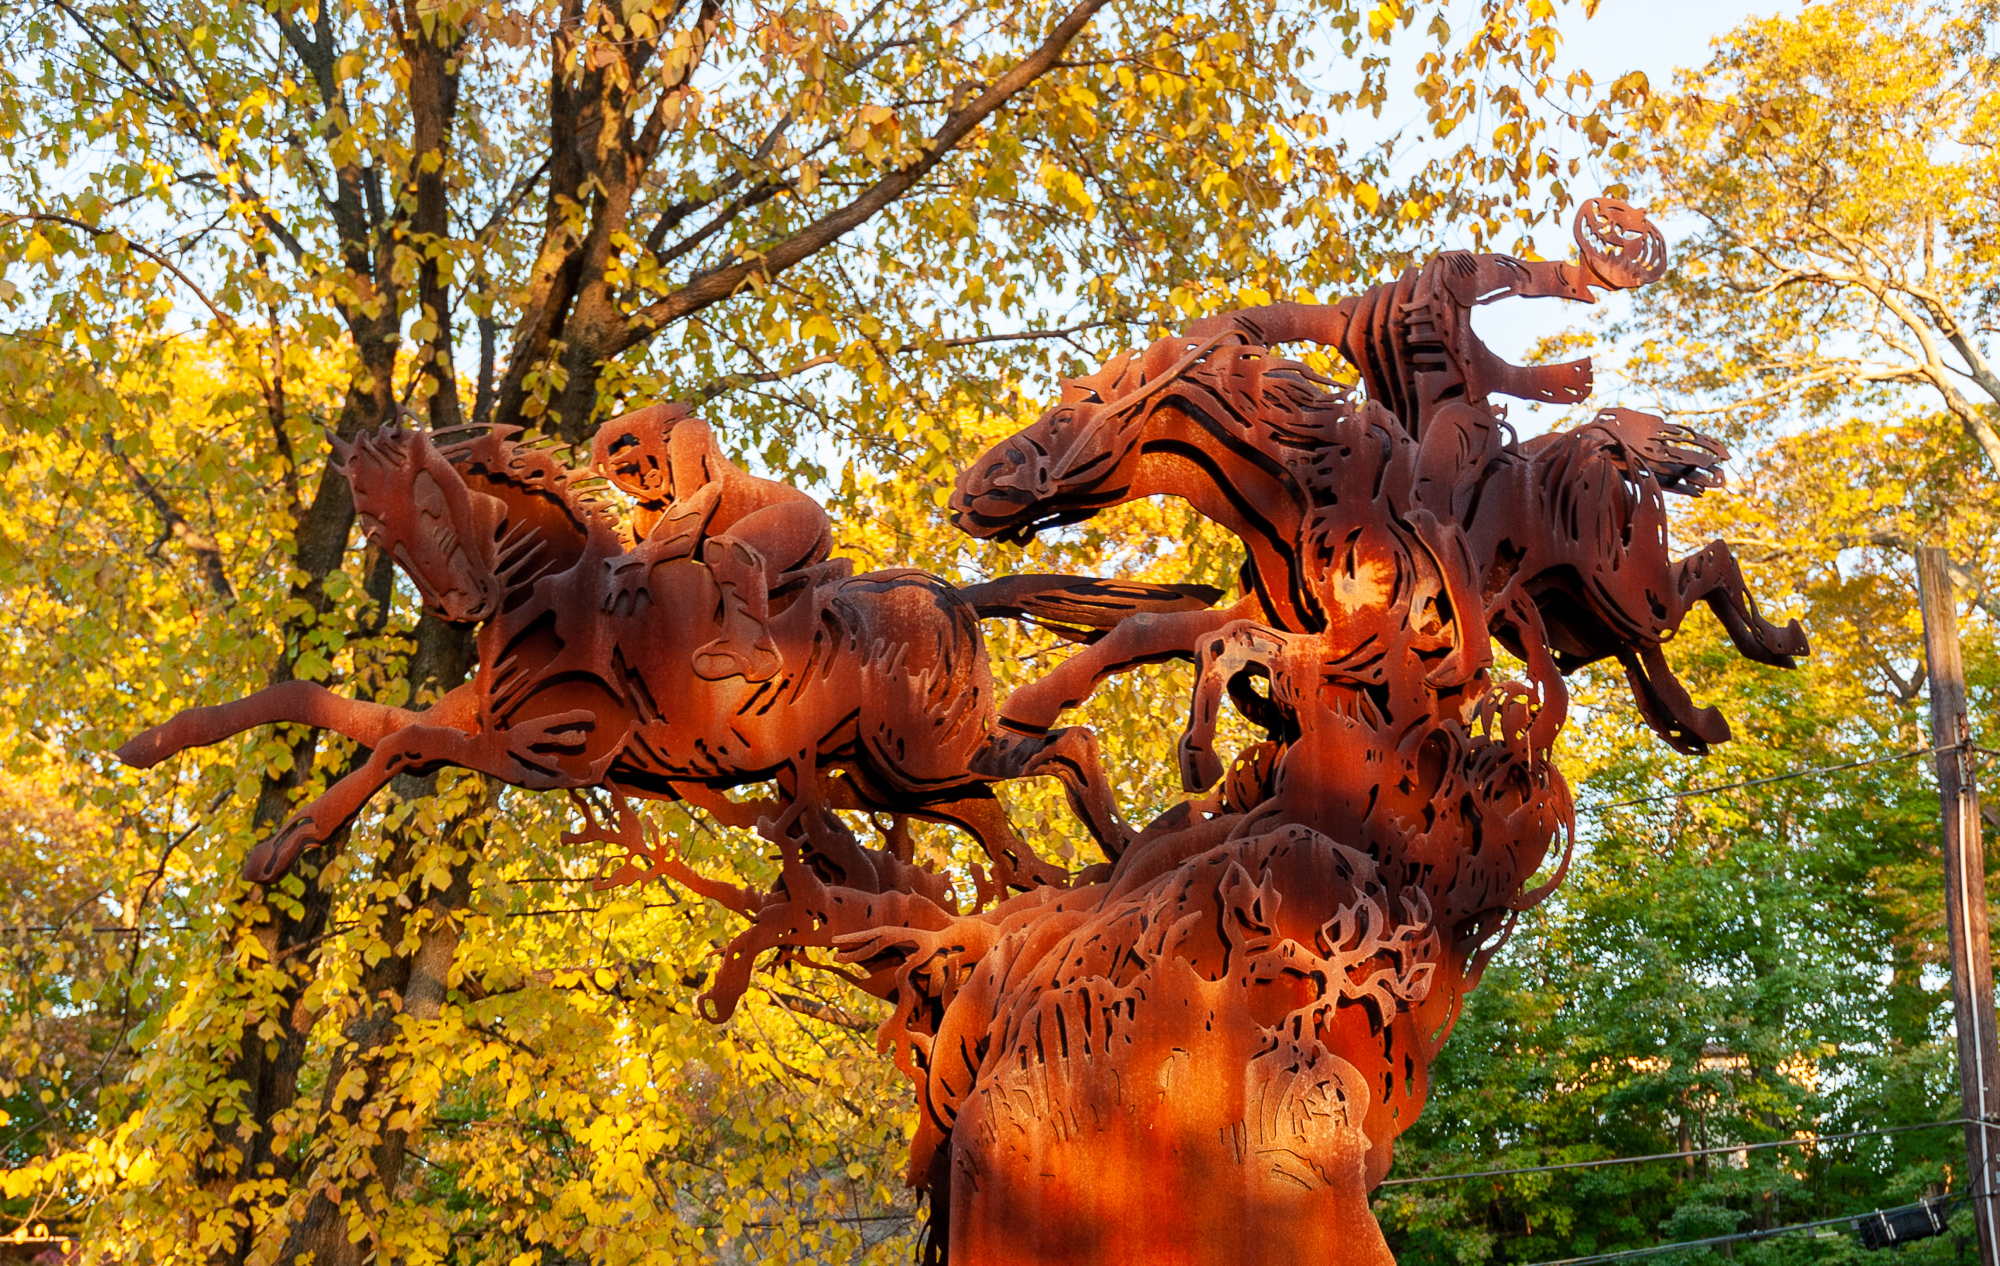 The steel sculpture of the headless horseman and Ichabod Crane stands alongside Route 9 in Sleepy Hollow, NY.